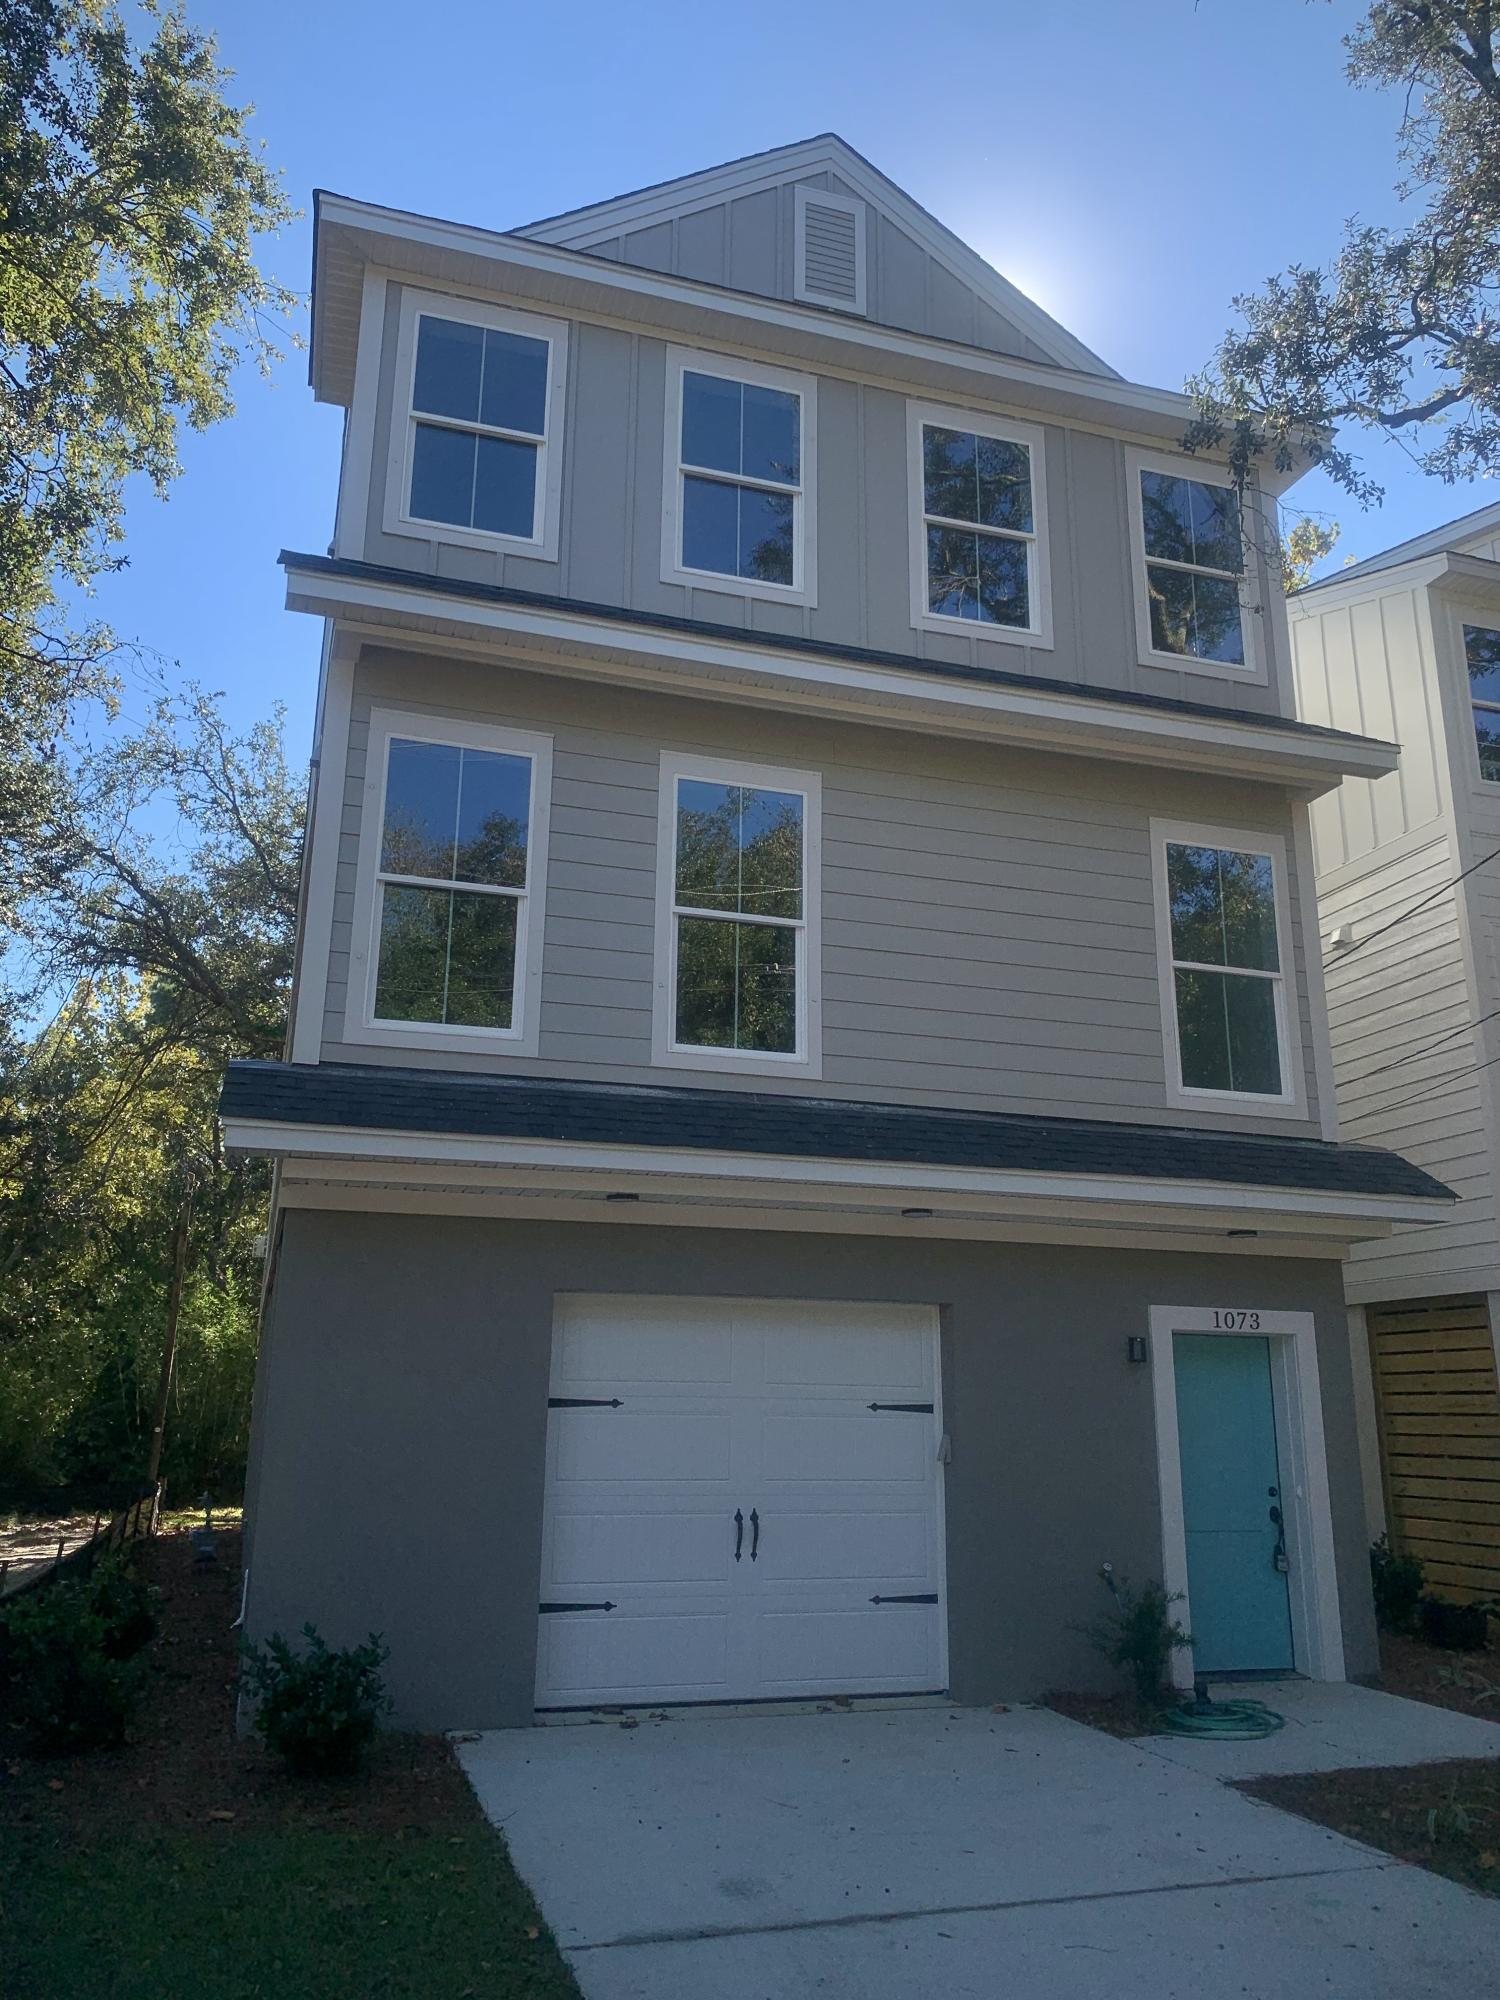 1073 Bexley Street North Charleston, SC 29405